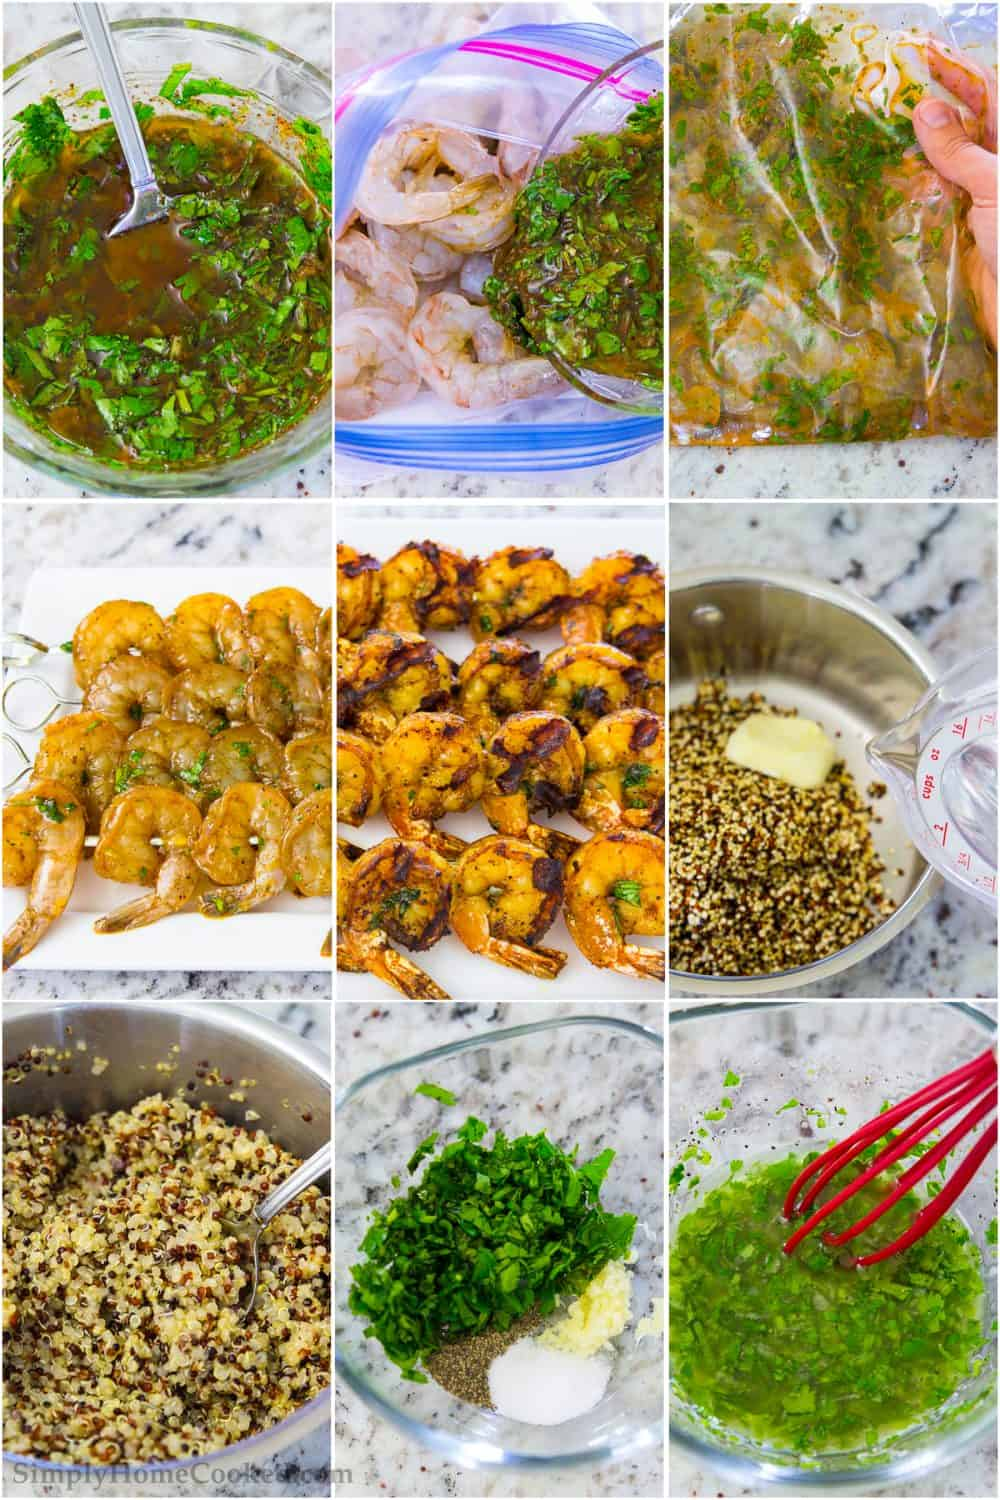 Step by step photo collage of marinating and cooking shrimp and quinoa for the shrimp quinoa bowls topped with cilantro lime dressing